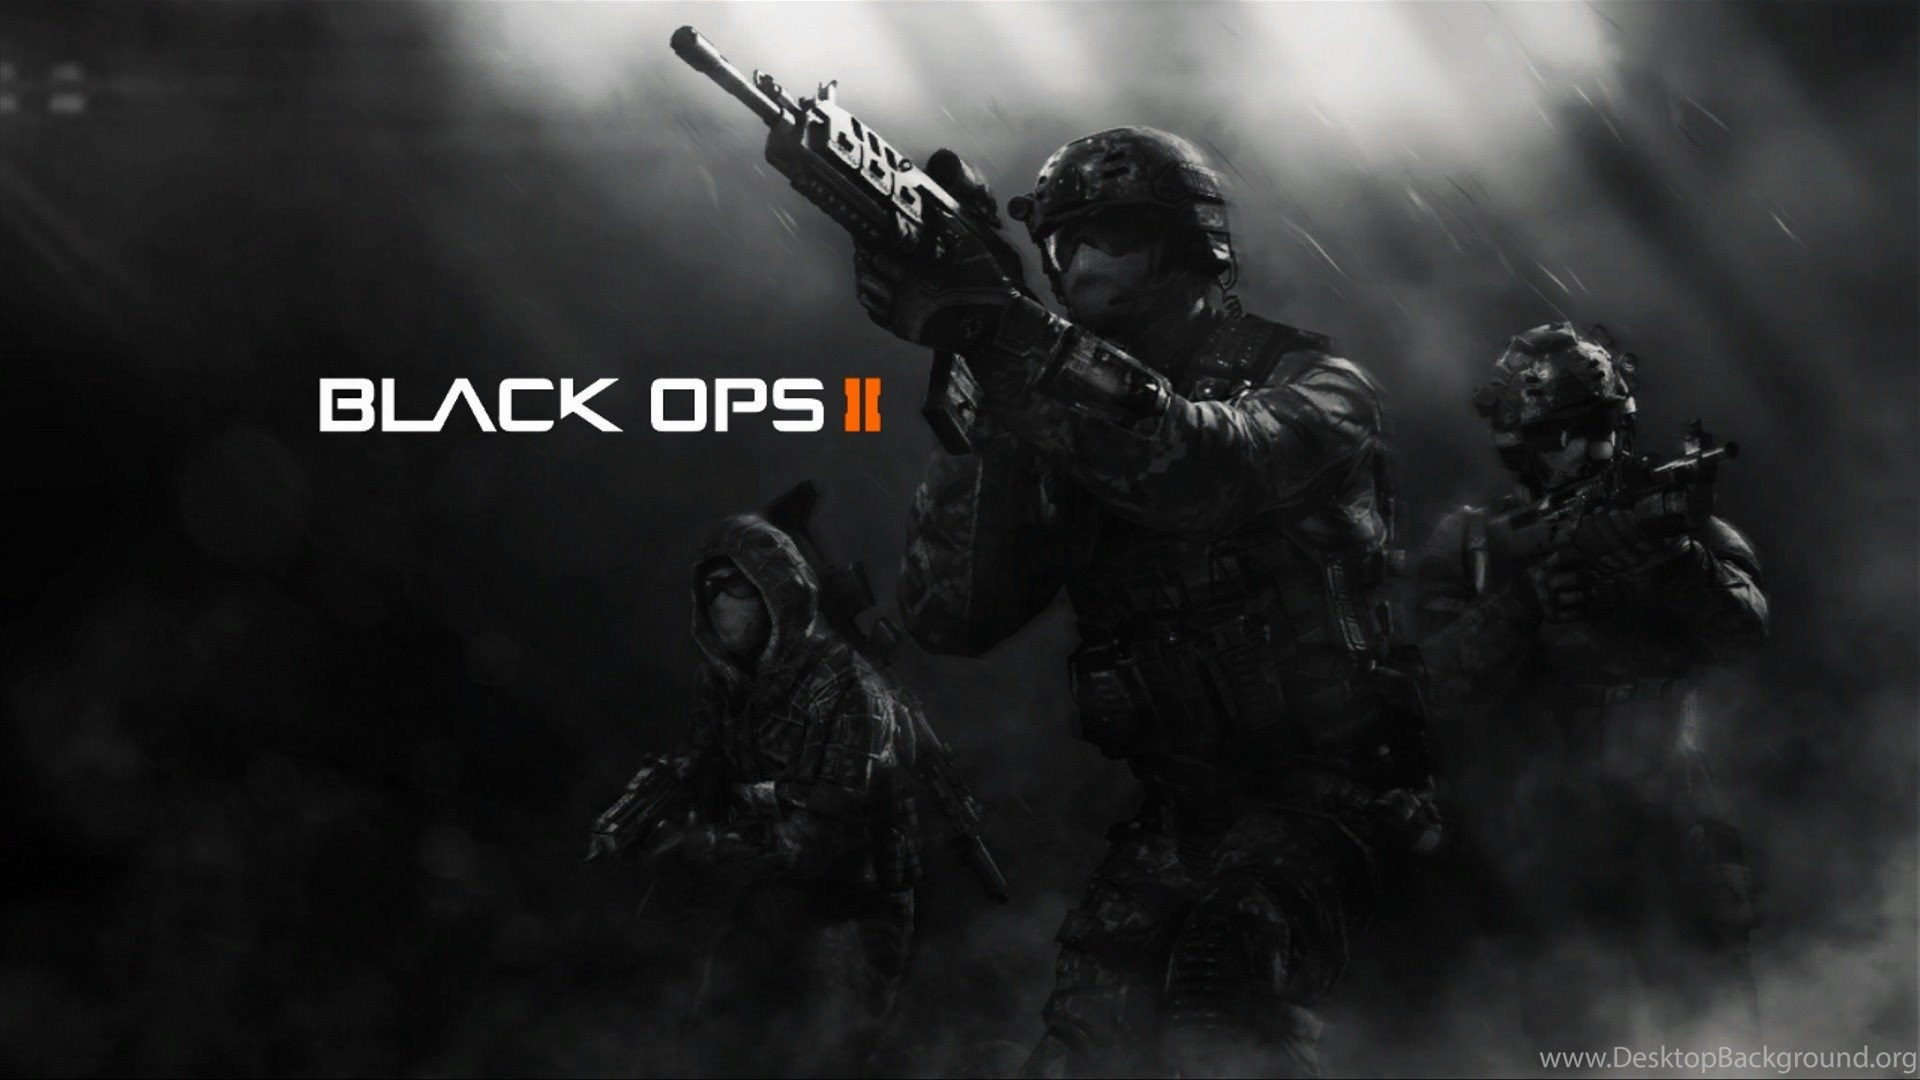 Download The Black Ops 2 Wallpaper Black Ops 2 Iphone Wallpapers